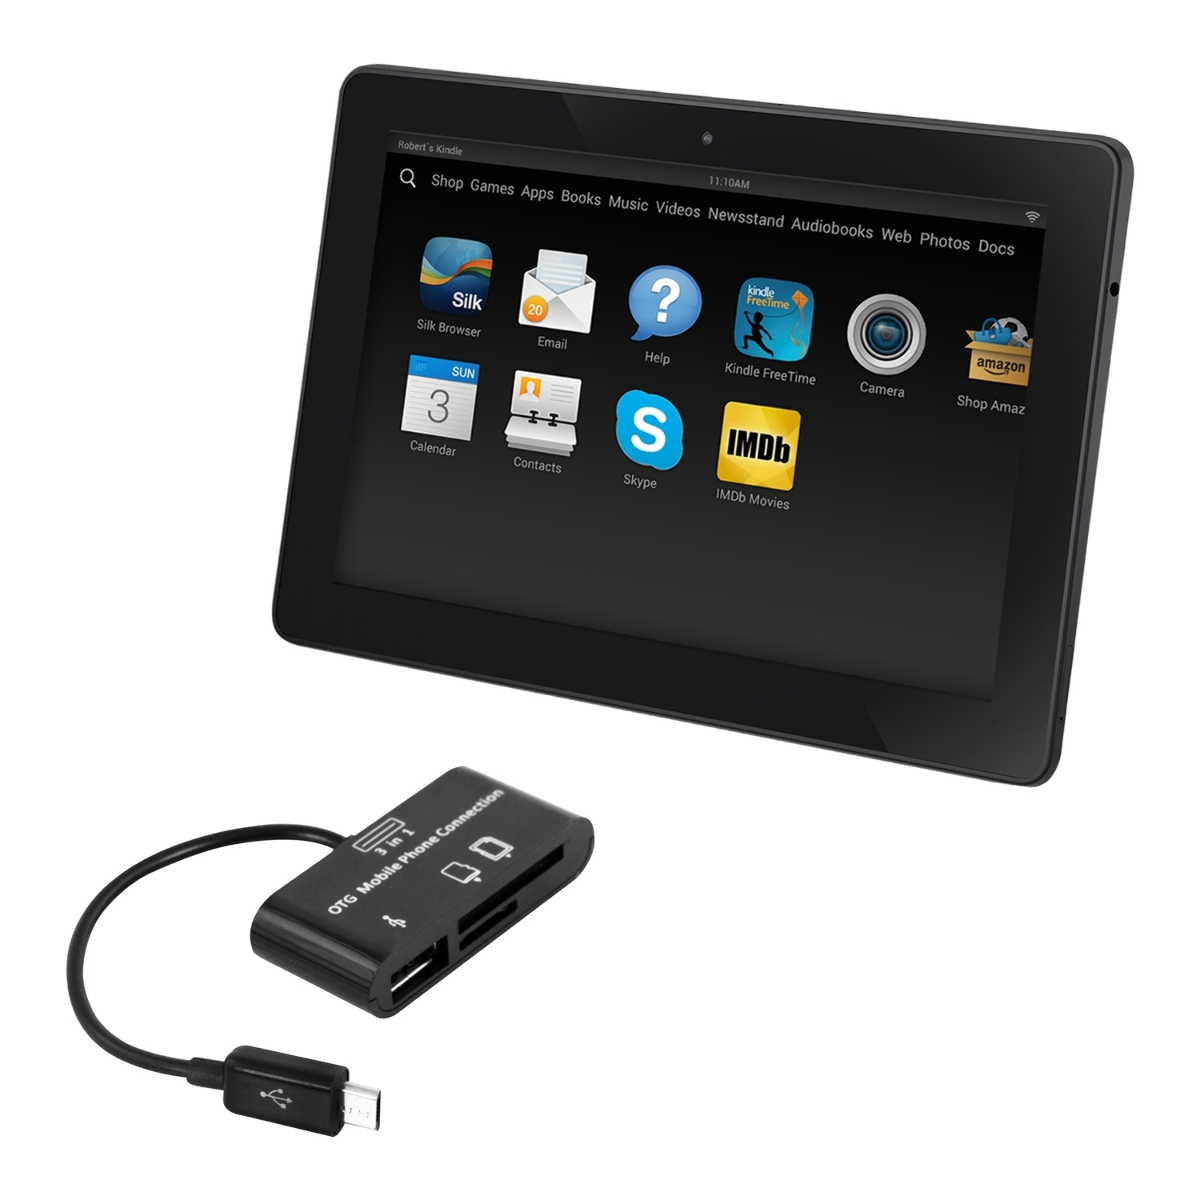 kwmobile 3in1 Micro USB Adapter Card Reader OTG for Amazon Kindle Fire HD 7  2014 black. ‹ › ‹ › ‹ ›